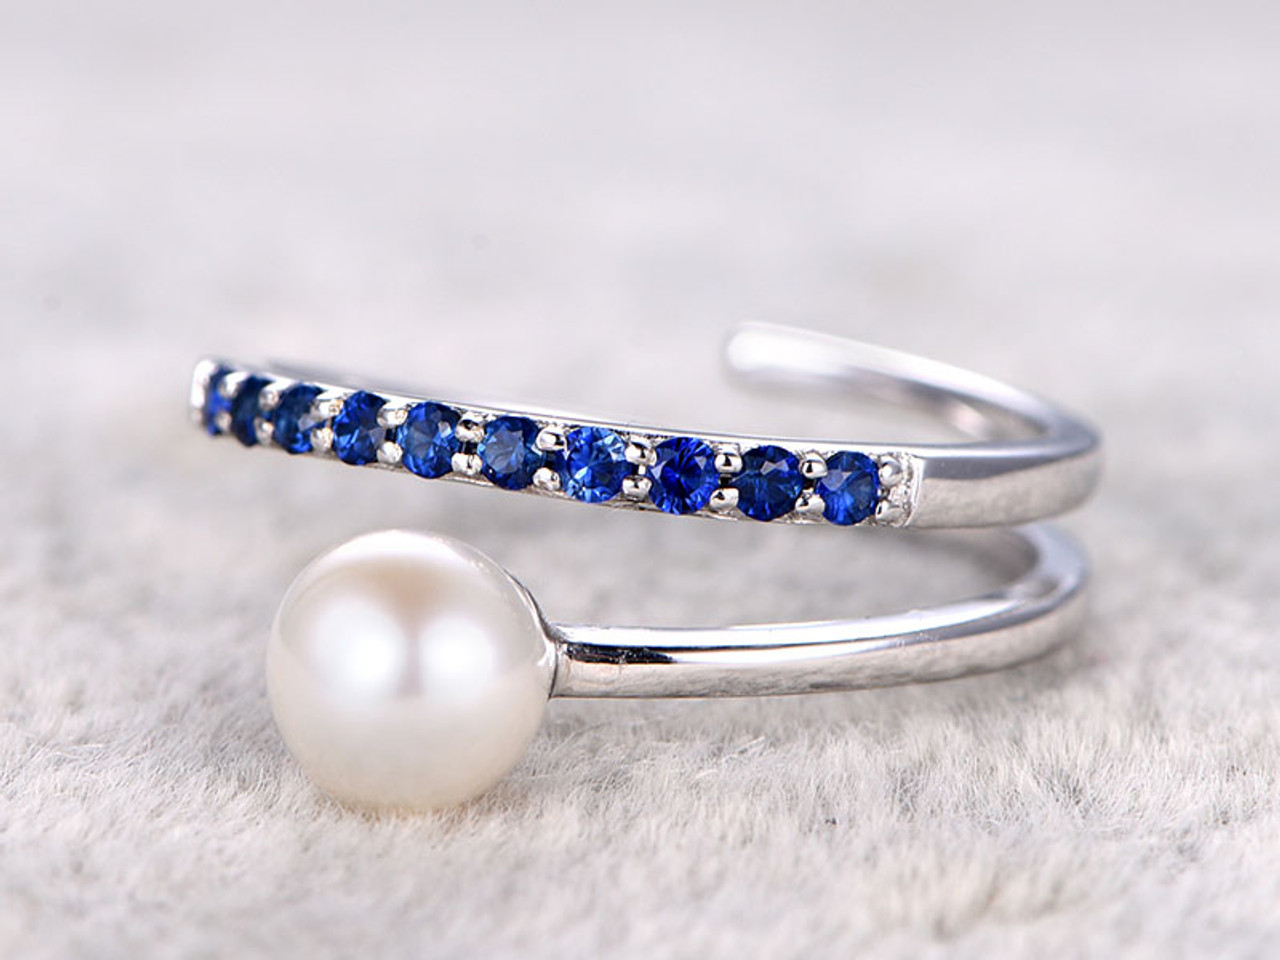 sterling ring women fine shaped white trendy product pear jewelry romantic real engagement pearls wholesale rings for tardoo silver